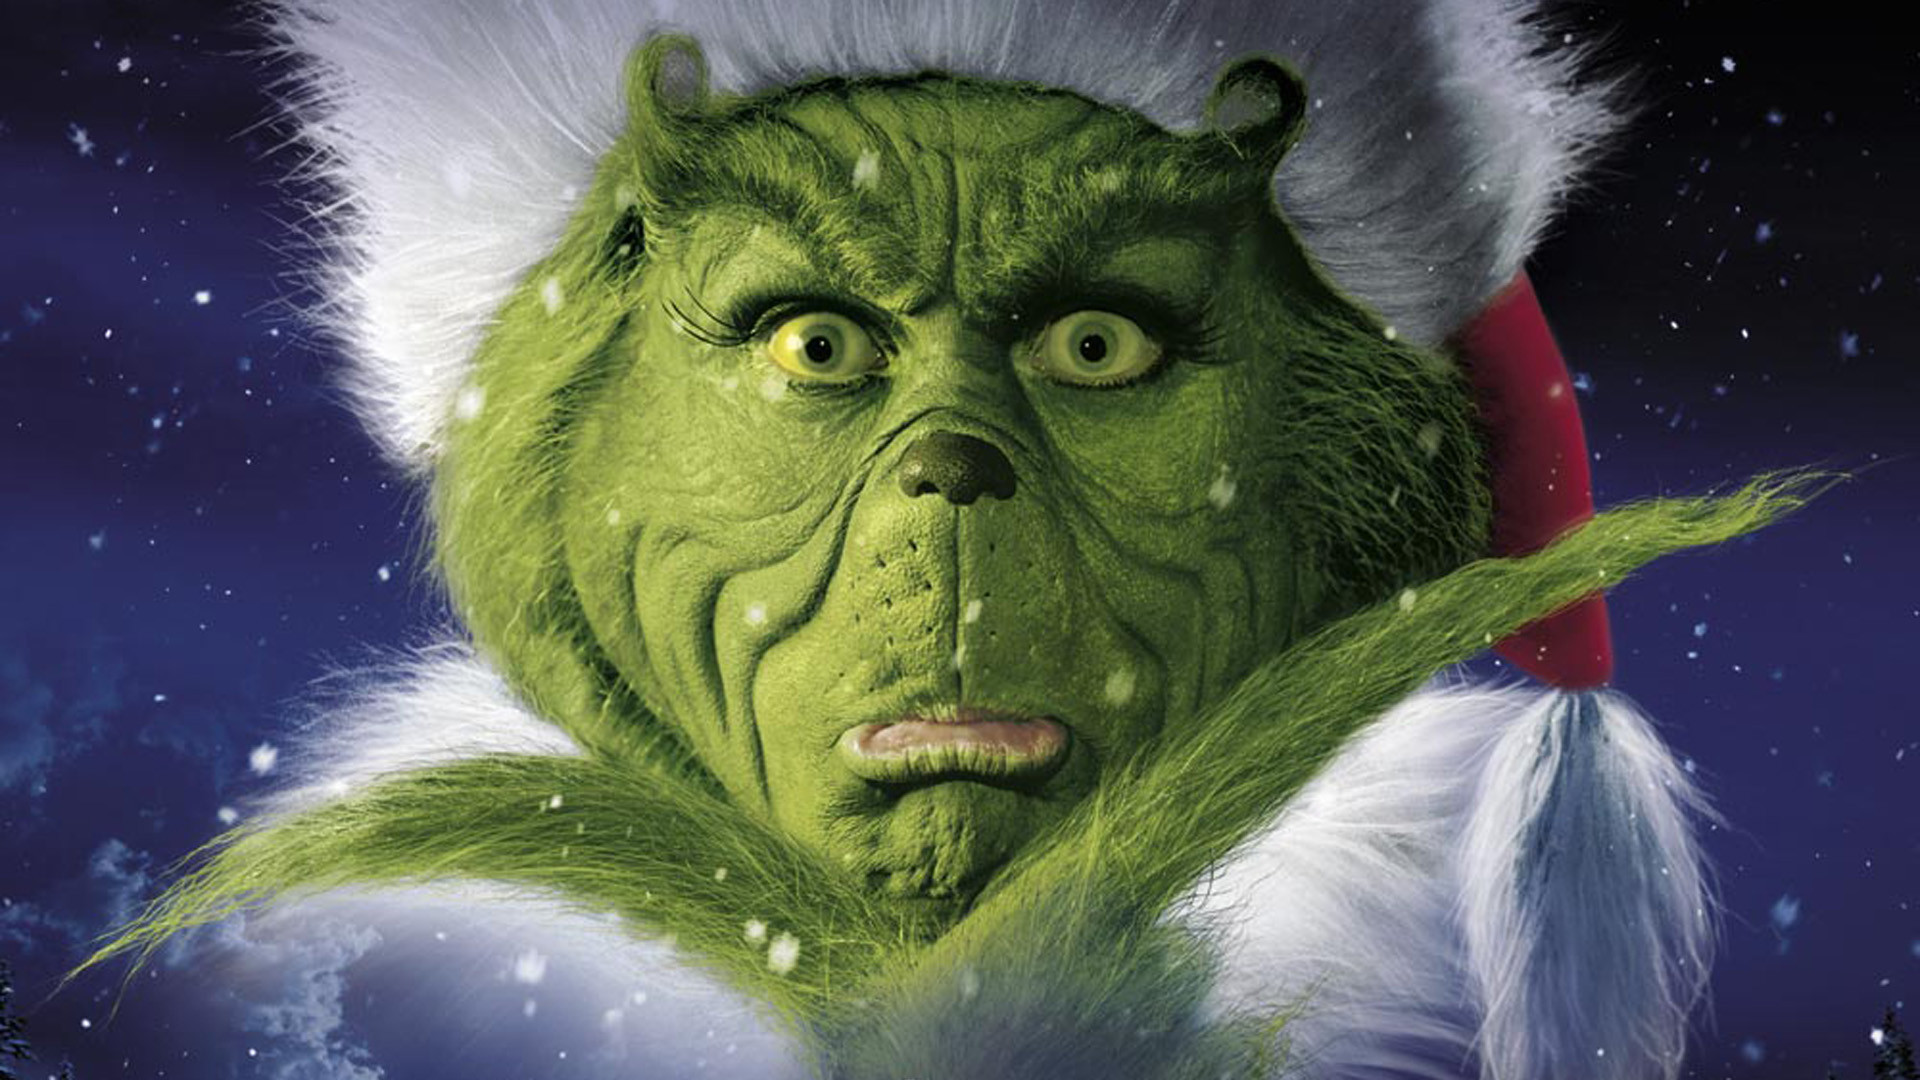 the grinch, movies/tv